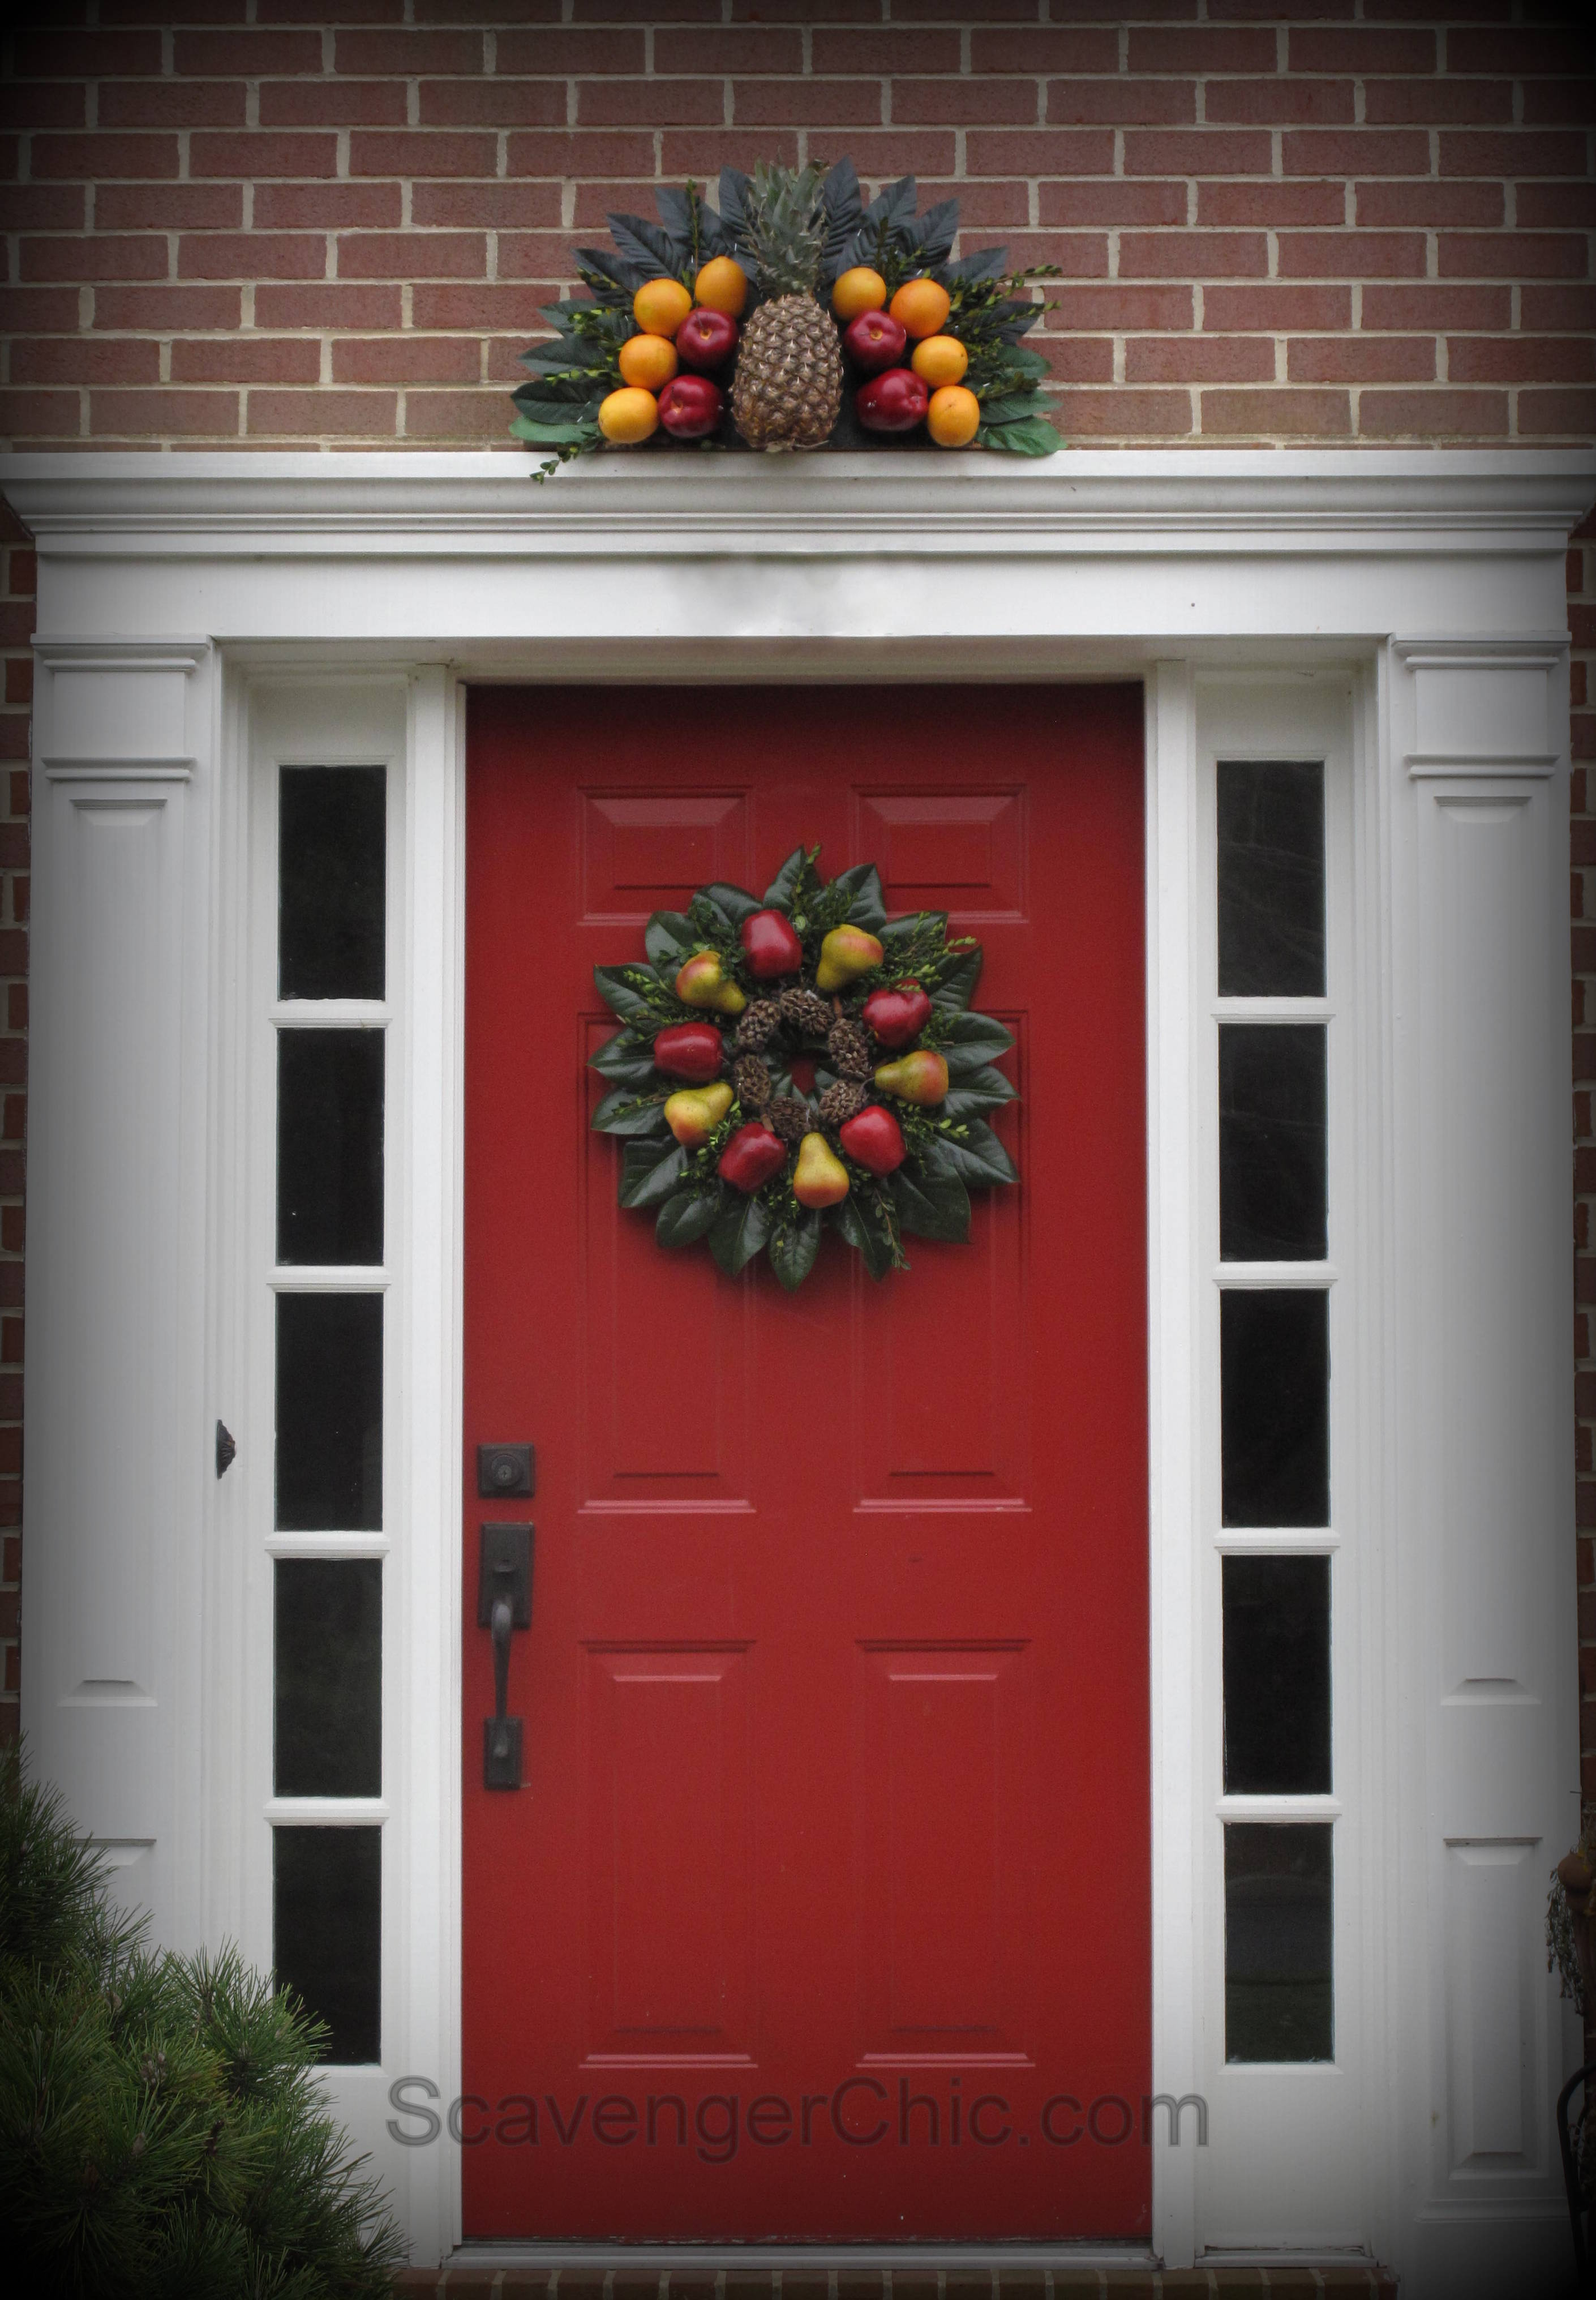 Fruit over the door christmas decoration - At Night Lit By A Spotlight Williamsburg Fruit Fan Over The Door Decoration Williamsburg Decorating Christmas Decorating Fruit